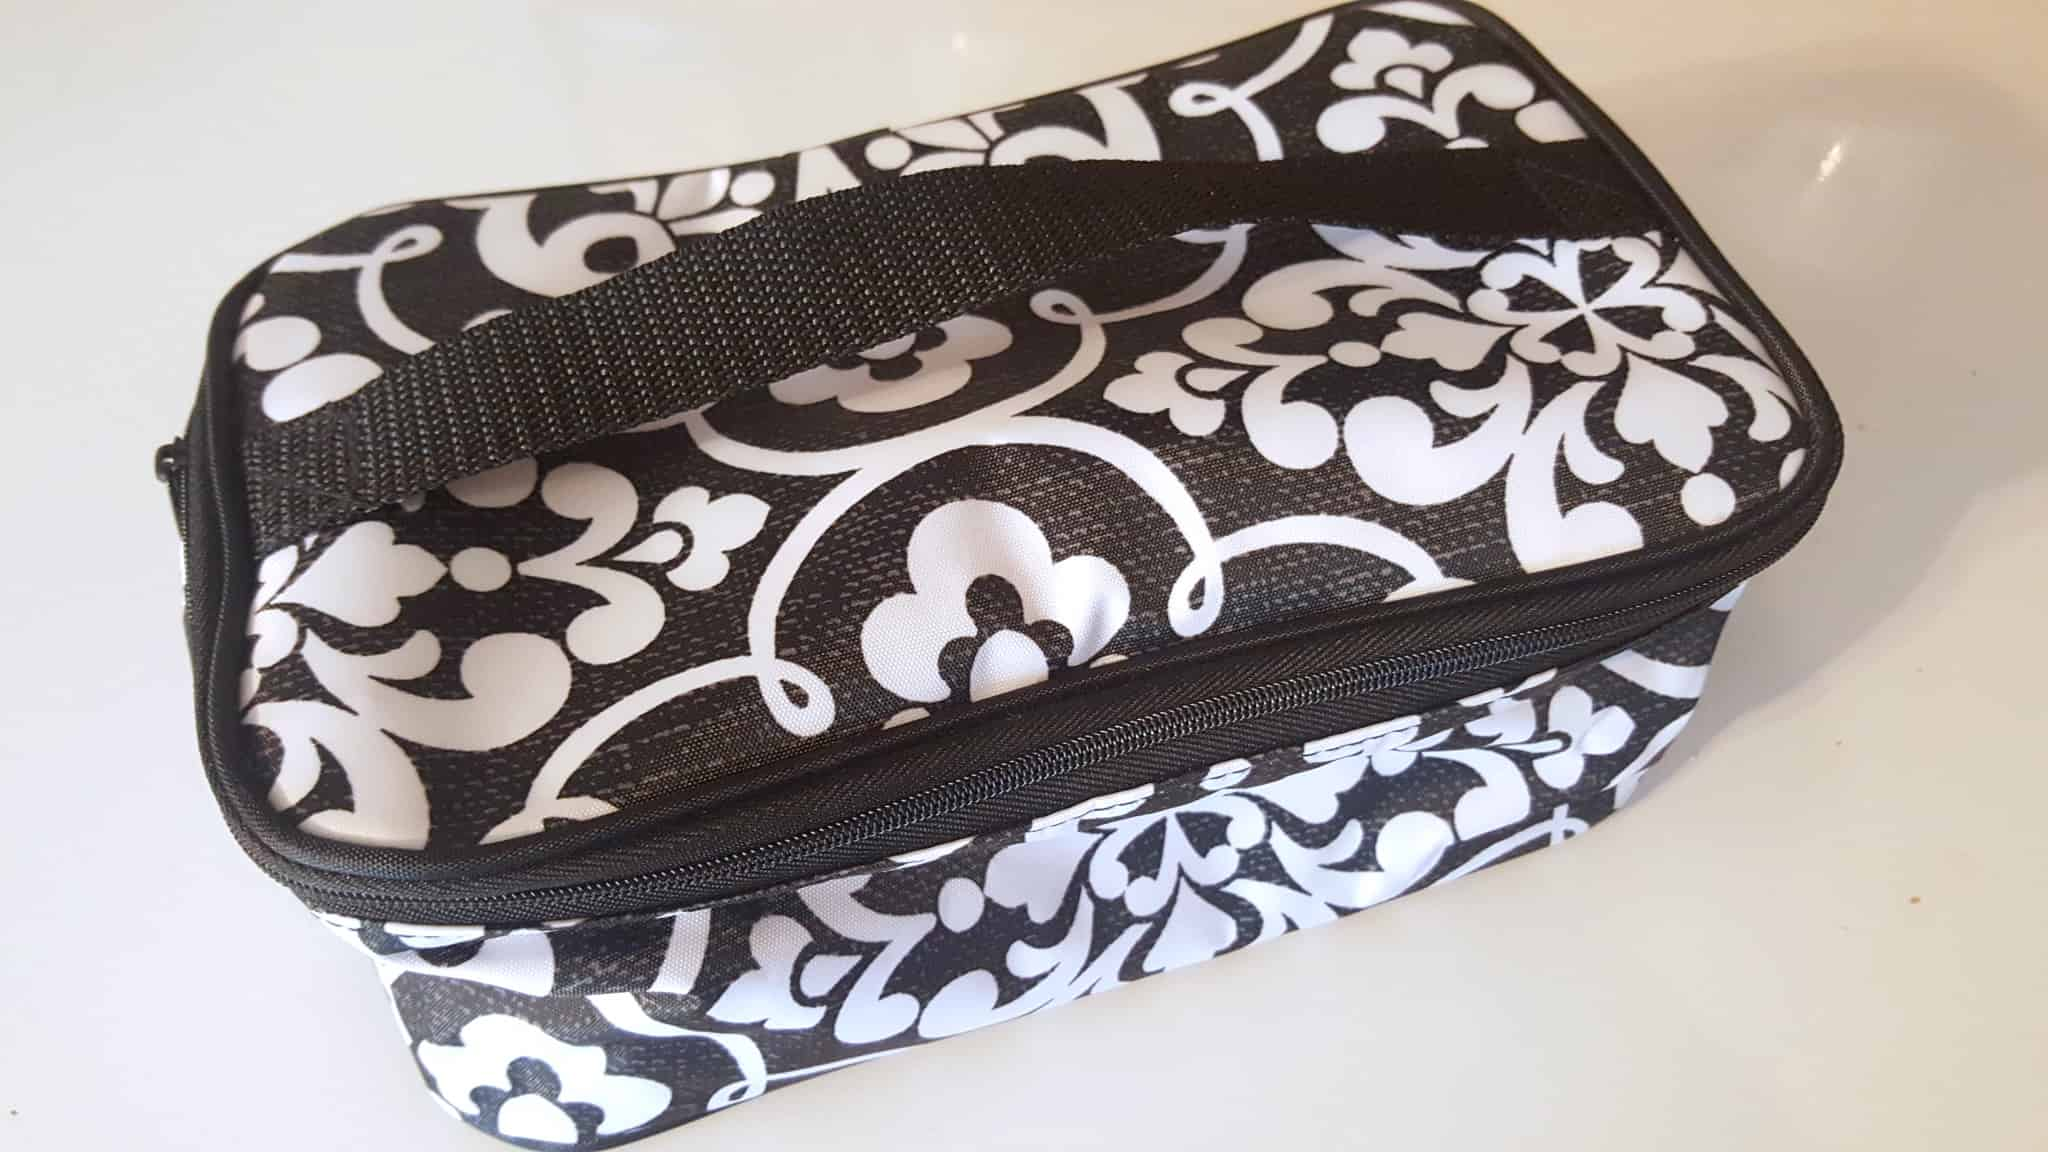 My Medicine Bag - 31 Cosmetic Bag